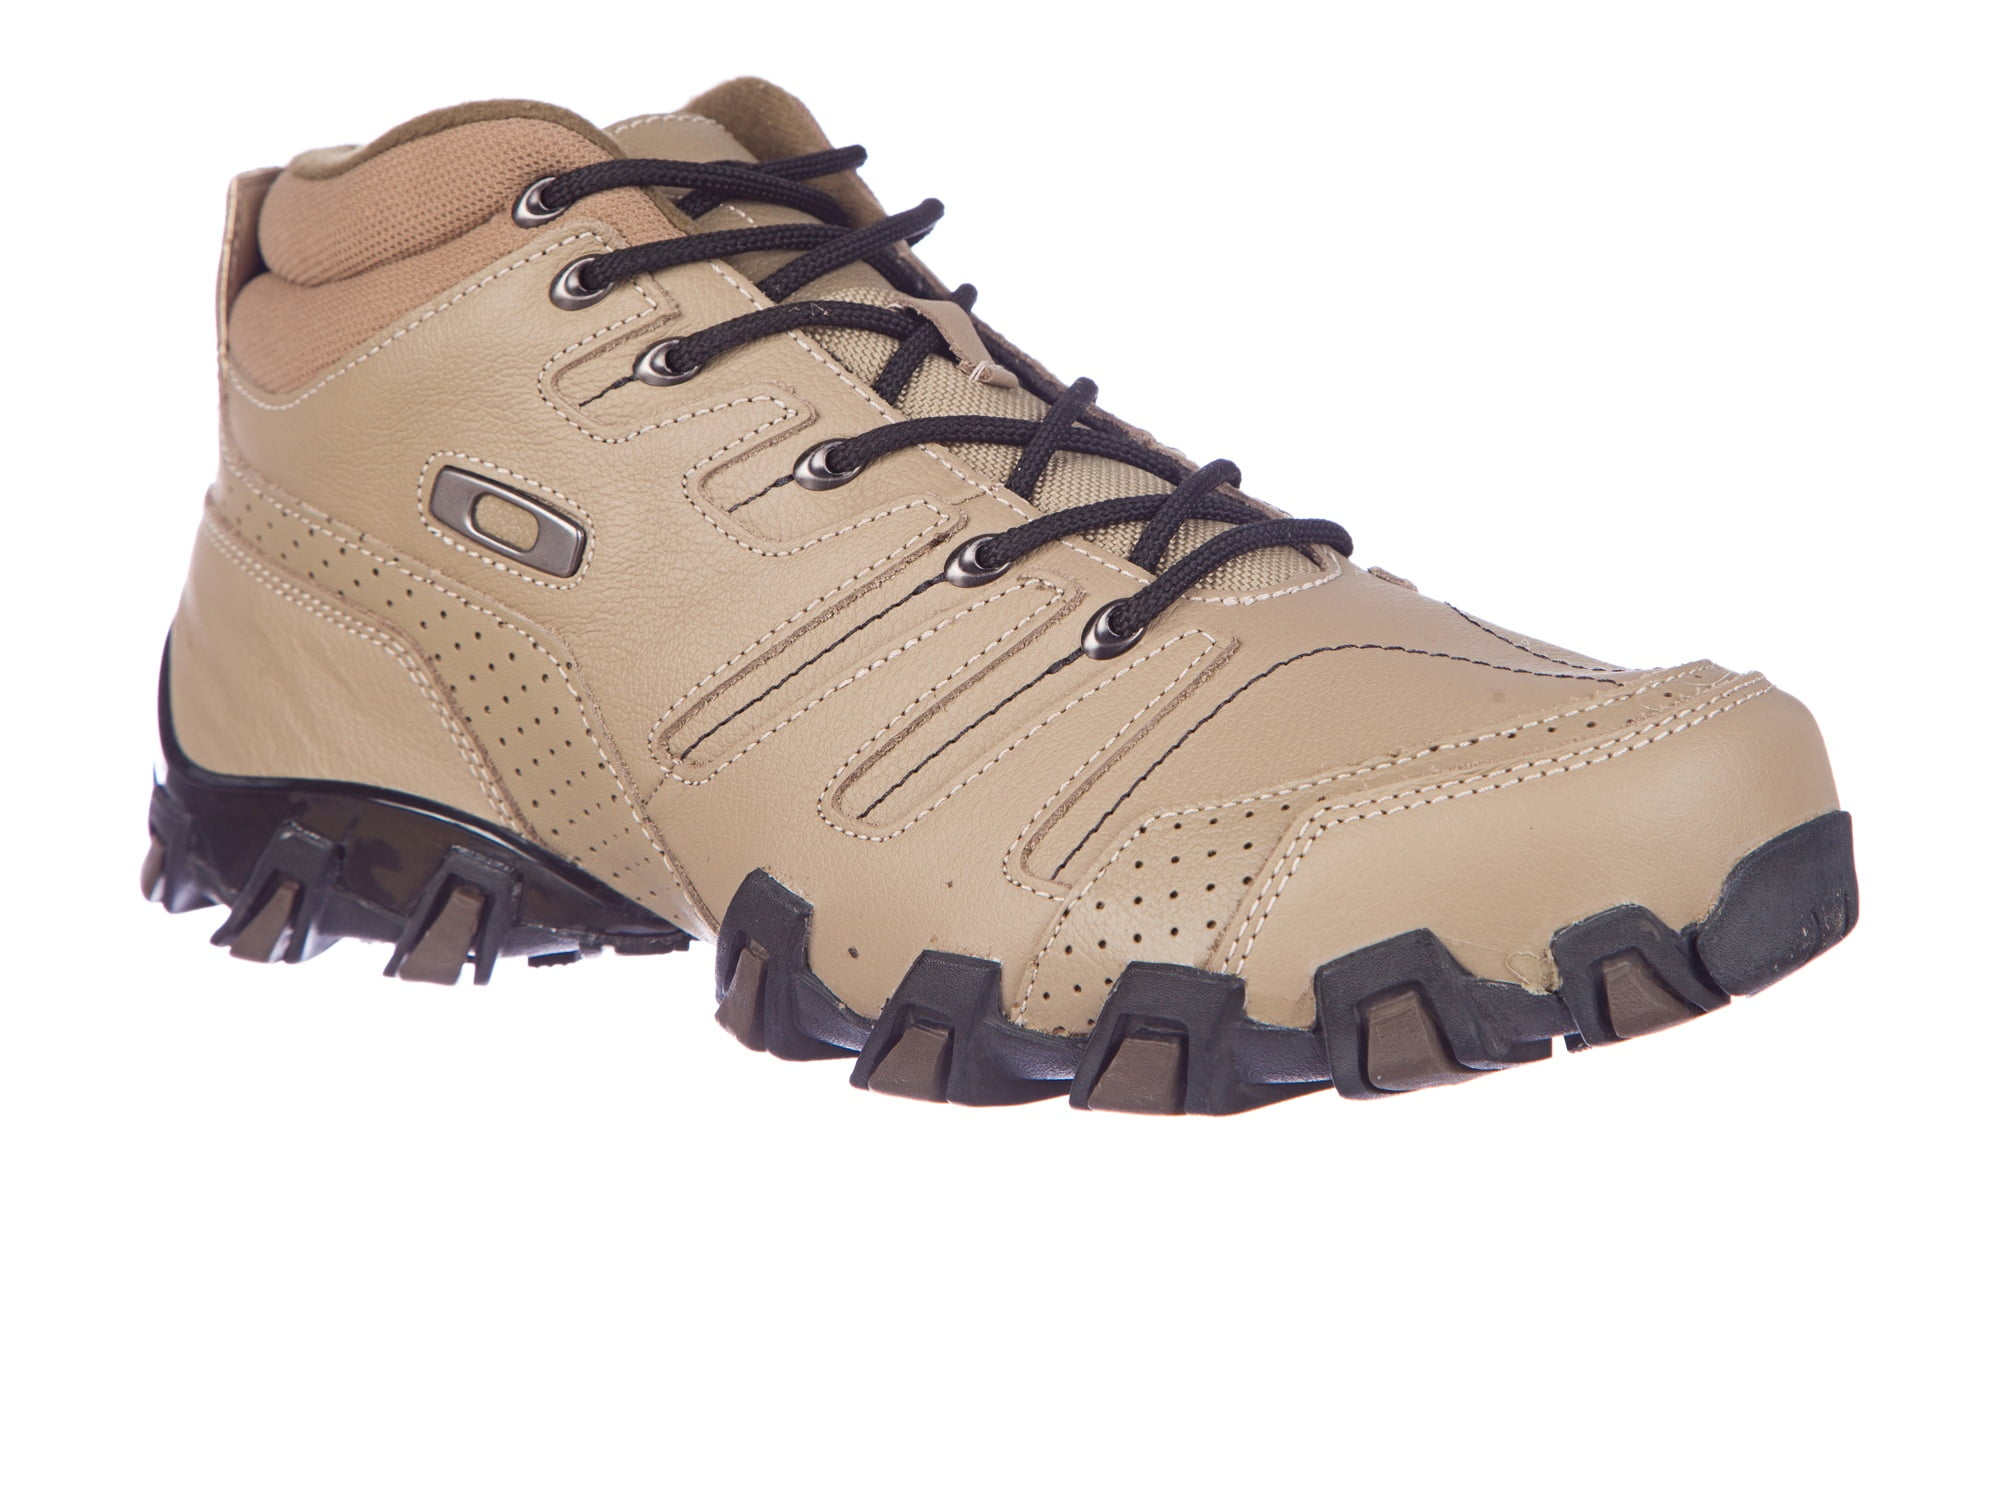 Bota oakley teeth sqr mid khaki